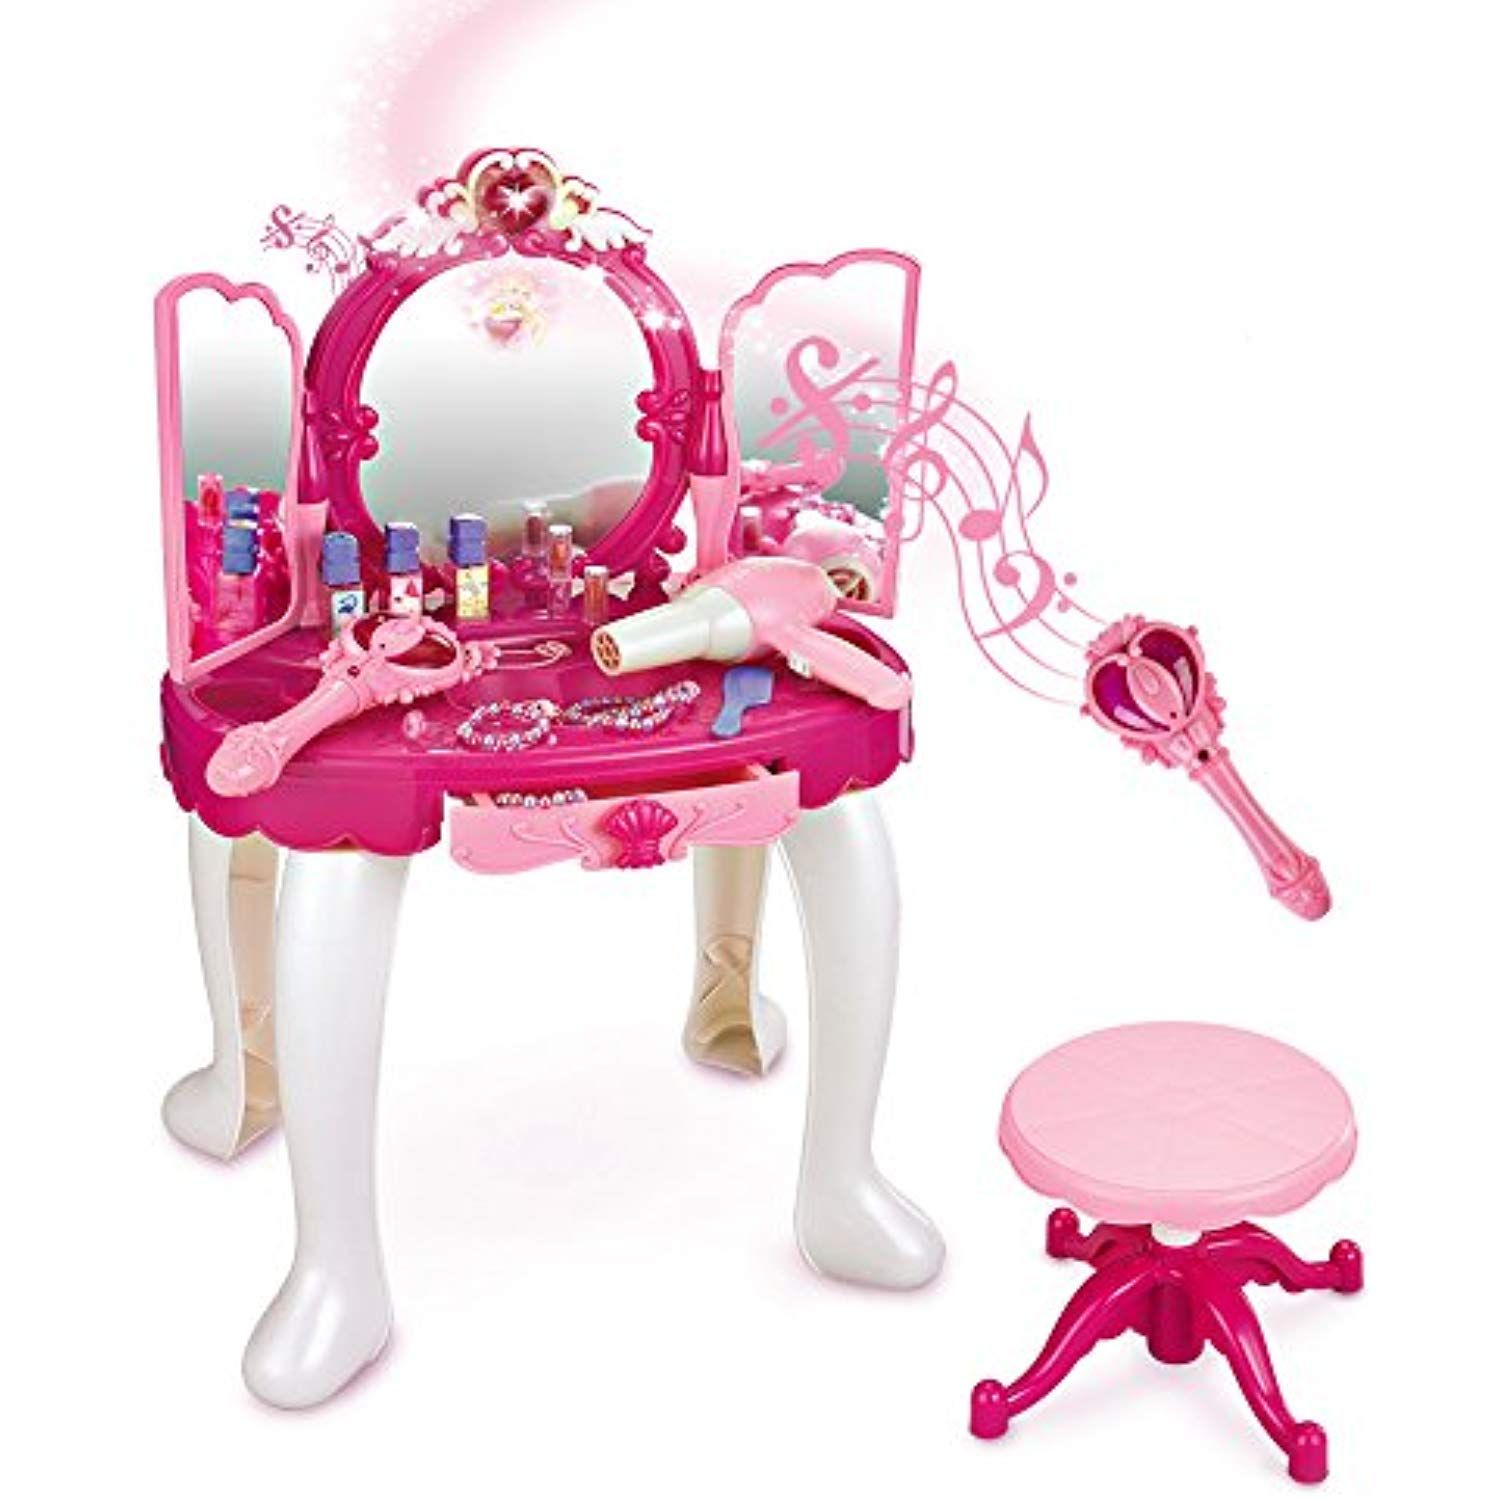 Sainsmart Jr Pretend Princess Girls Vanity Table With Fairy Infrared Control And Mp3 Music Playing Princess D Girls Vanity Table Girls Vanity Kids Vanity Set